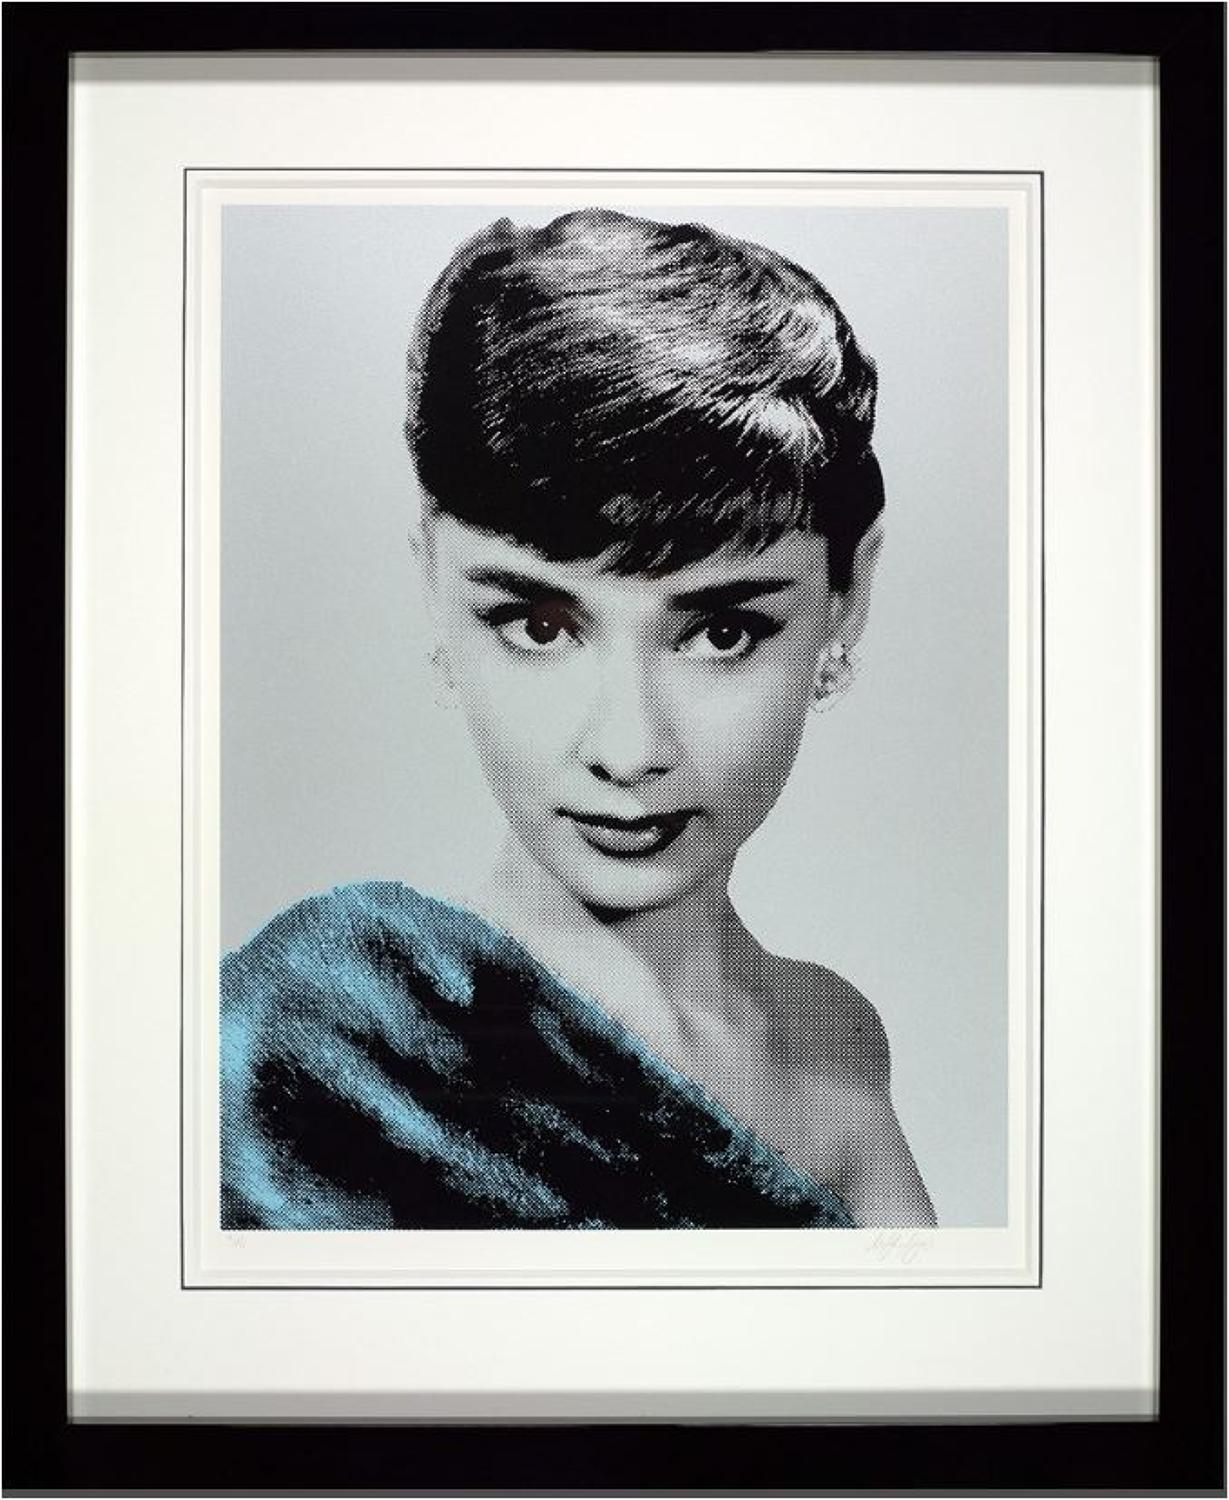 Beauty Queen-Audrey Hepburn Art Print by Nuala Mulligan